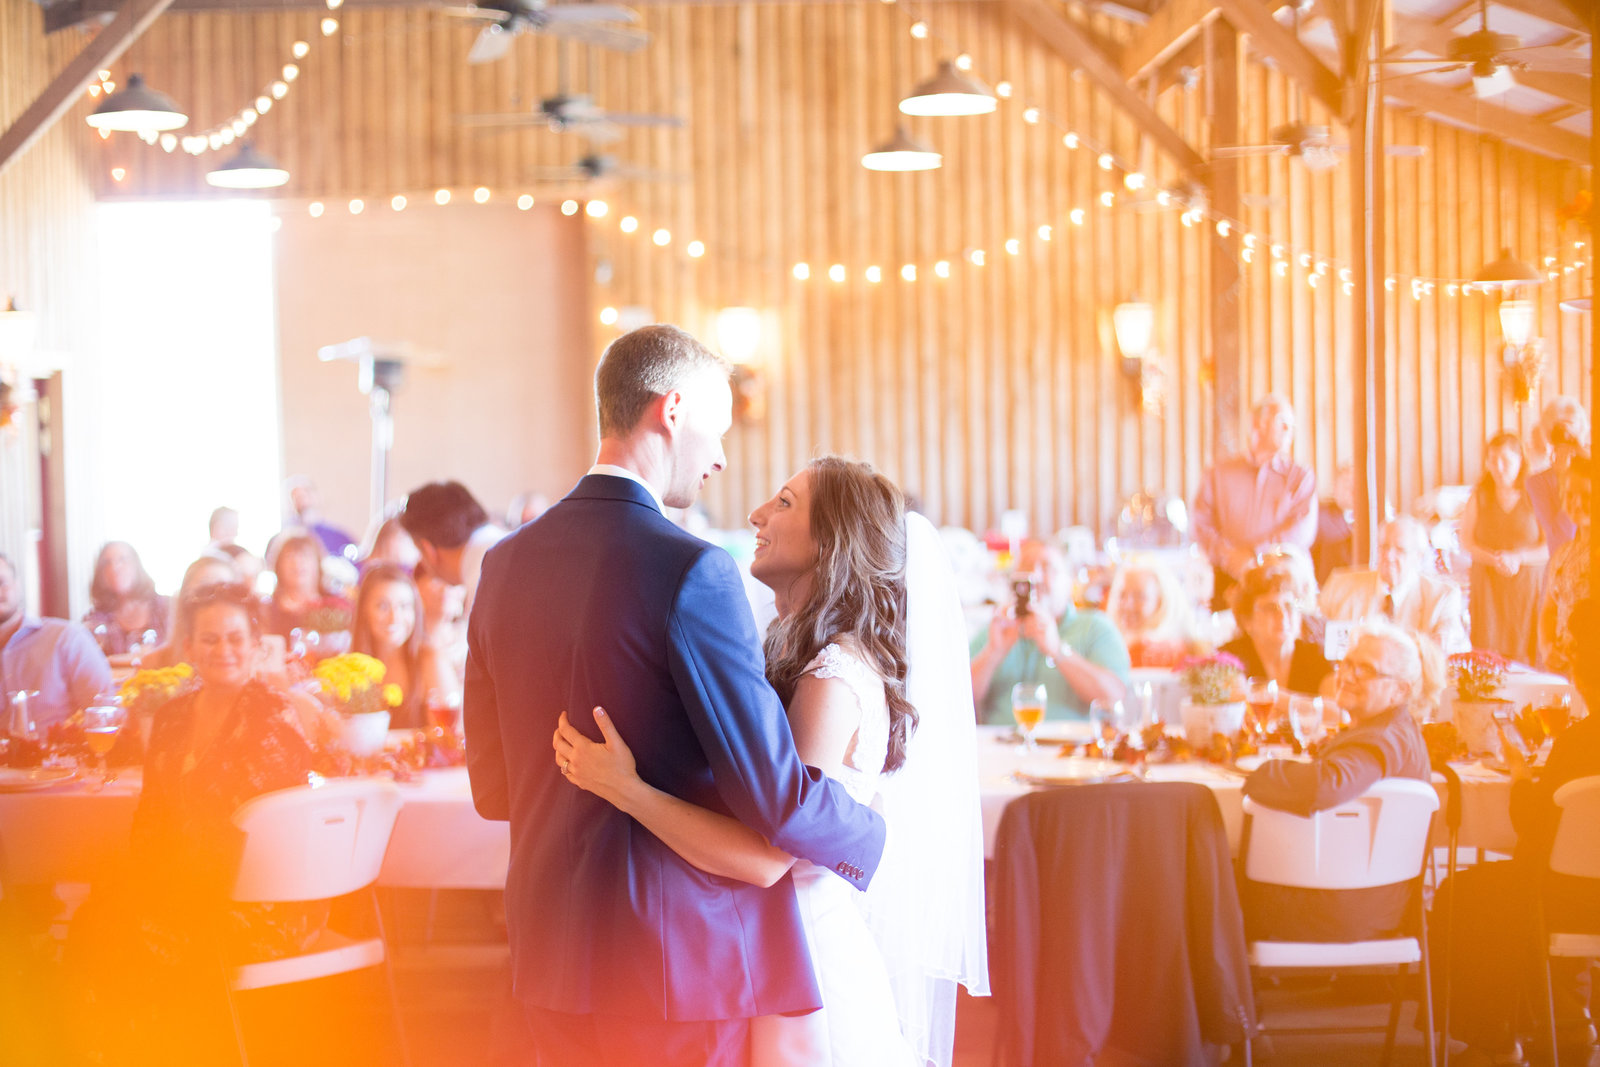 Angie+Jesse-Wolftrap-Farm-Wedding-VA-MermaidlakePhotography-638-49